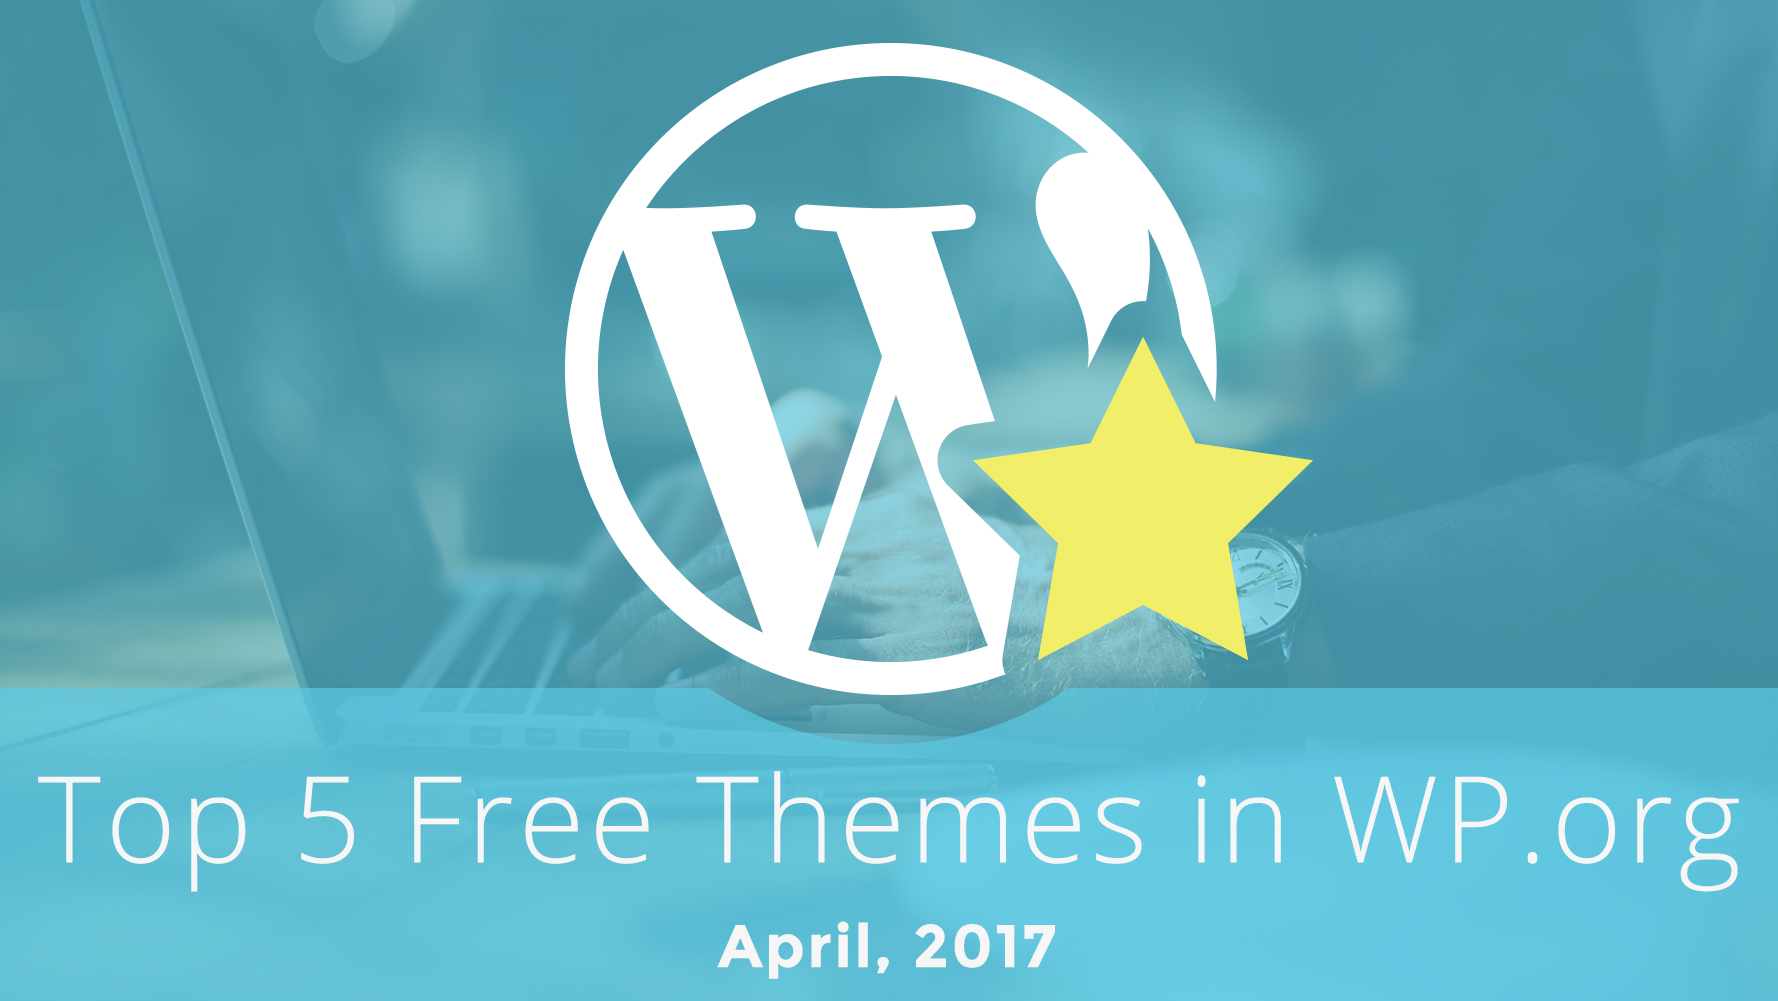 Top 5 Free Themes in WordPress.org—April 2017